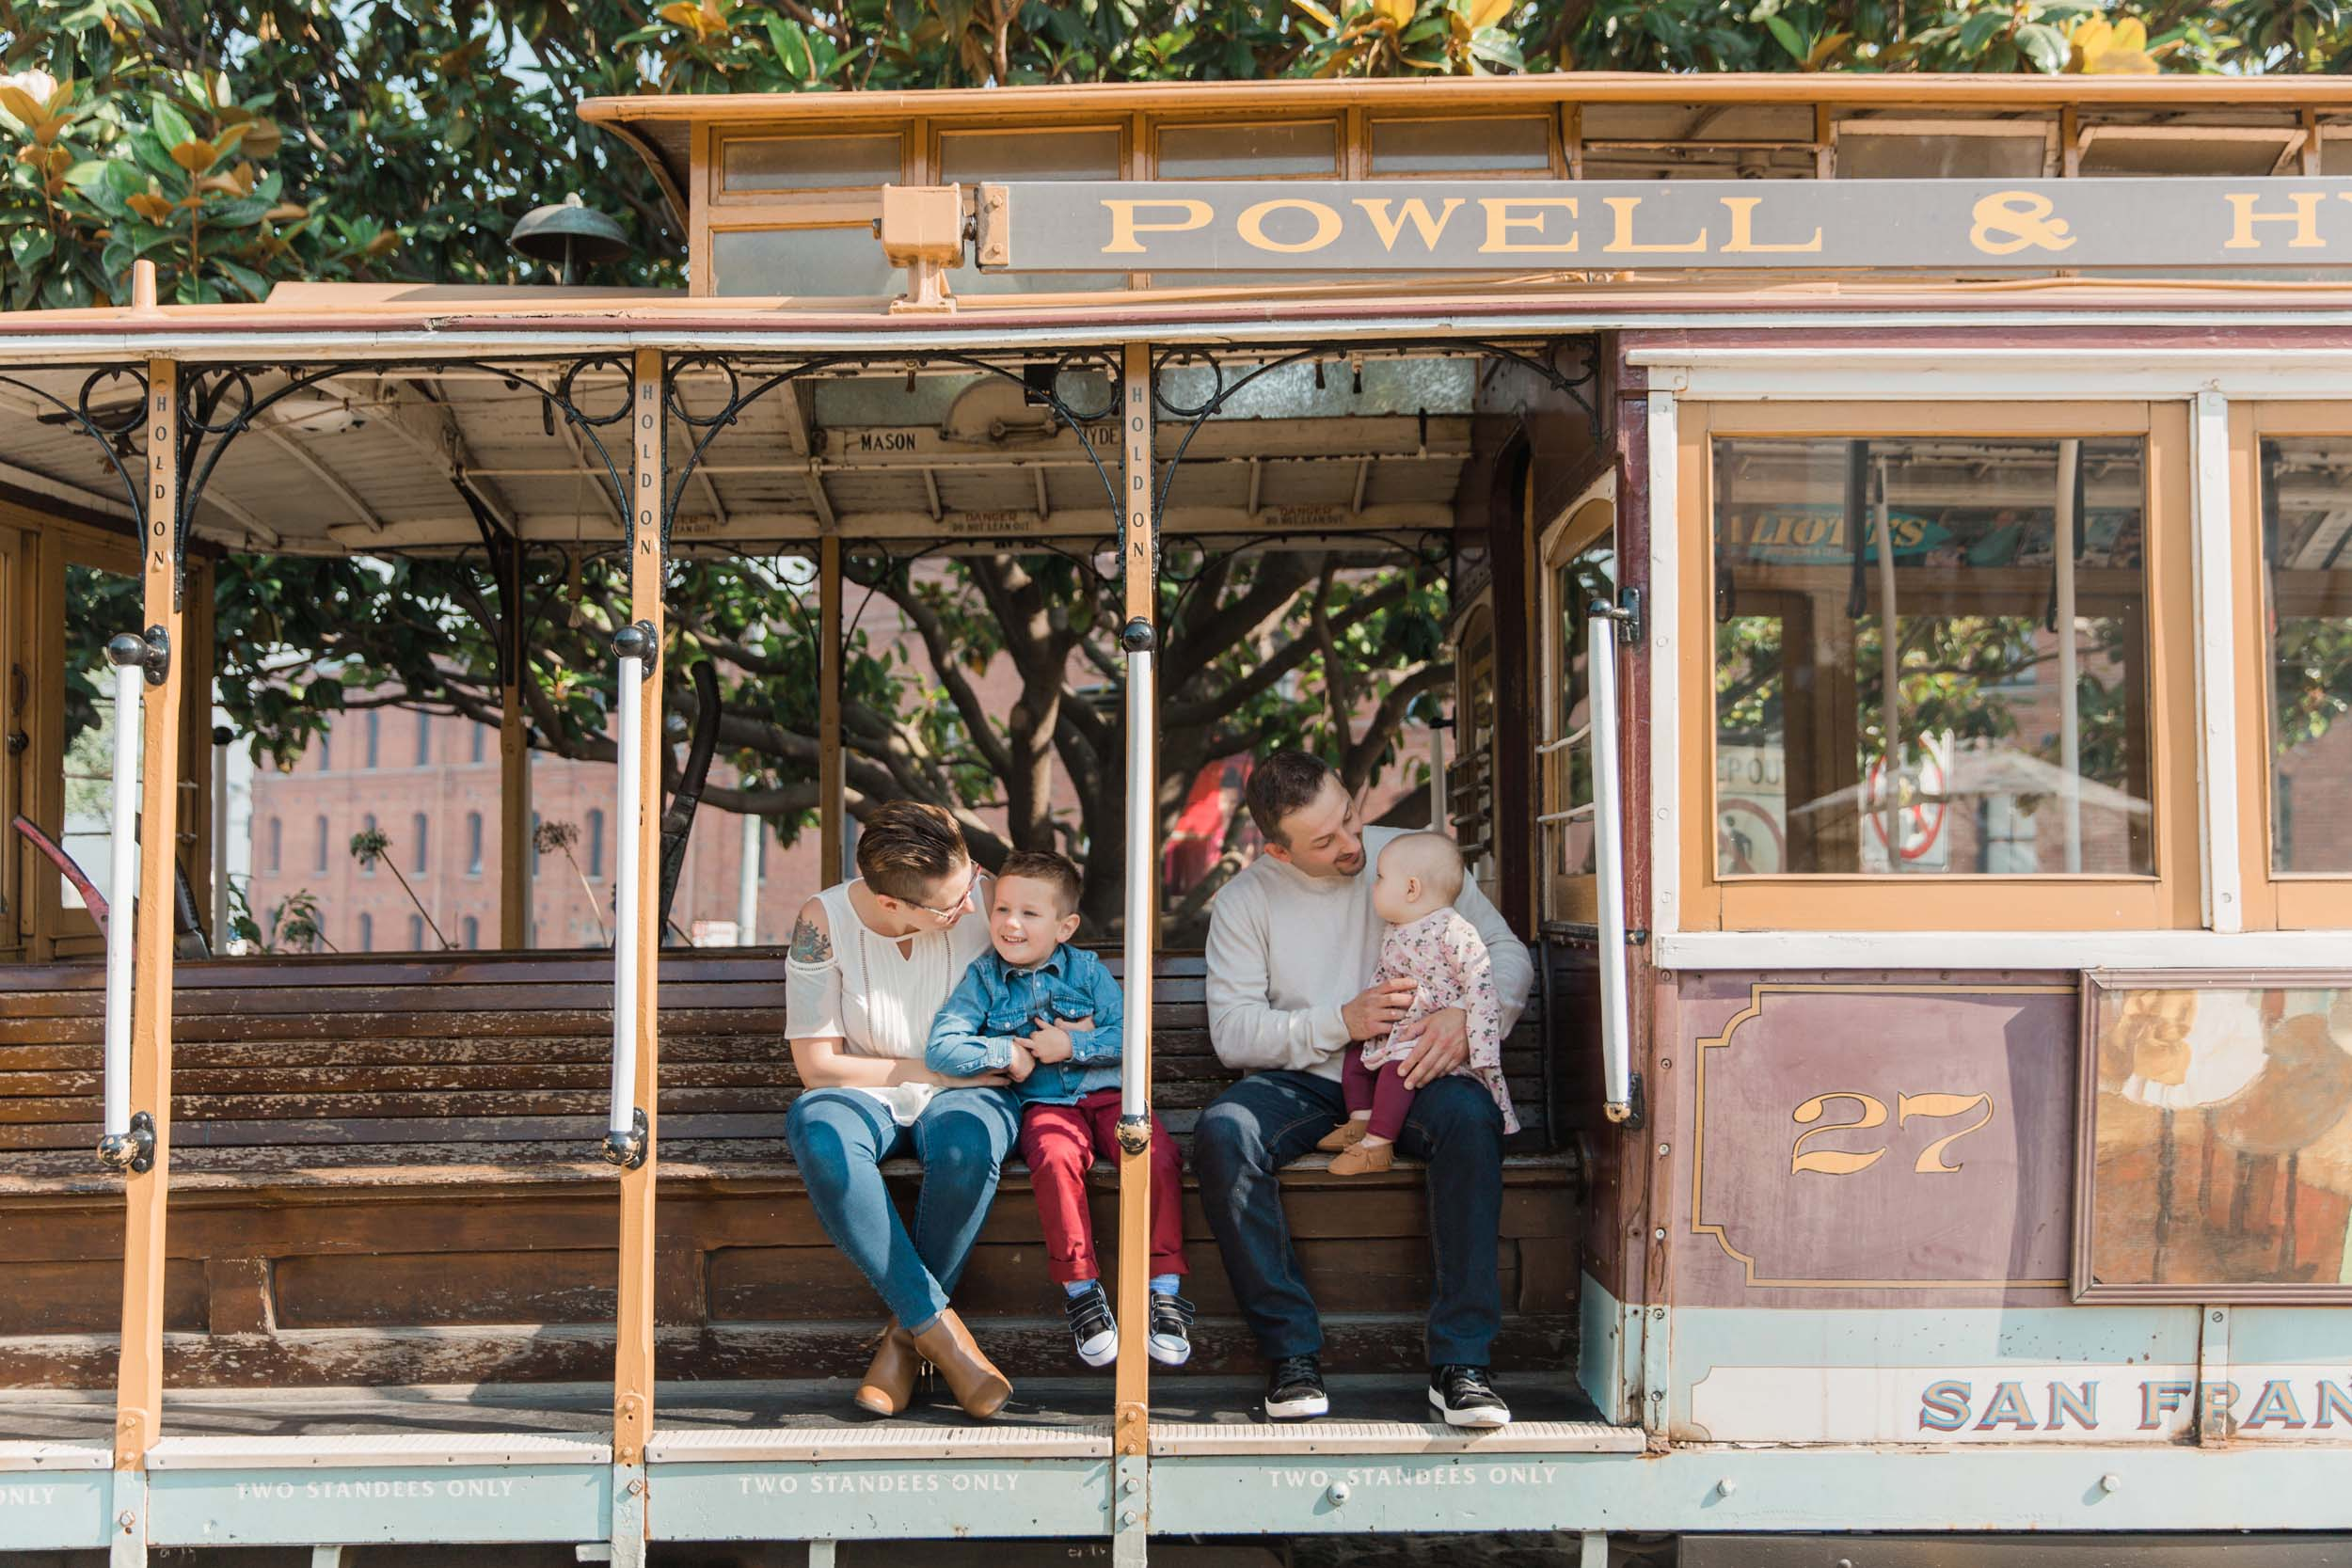 A family with two small children sit on a trolley in San Francisco.